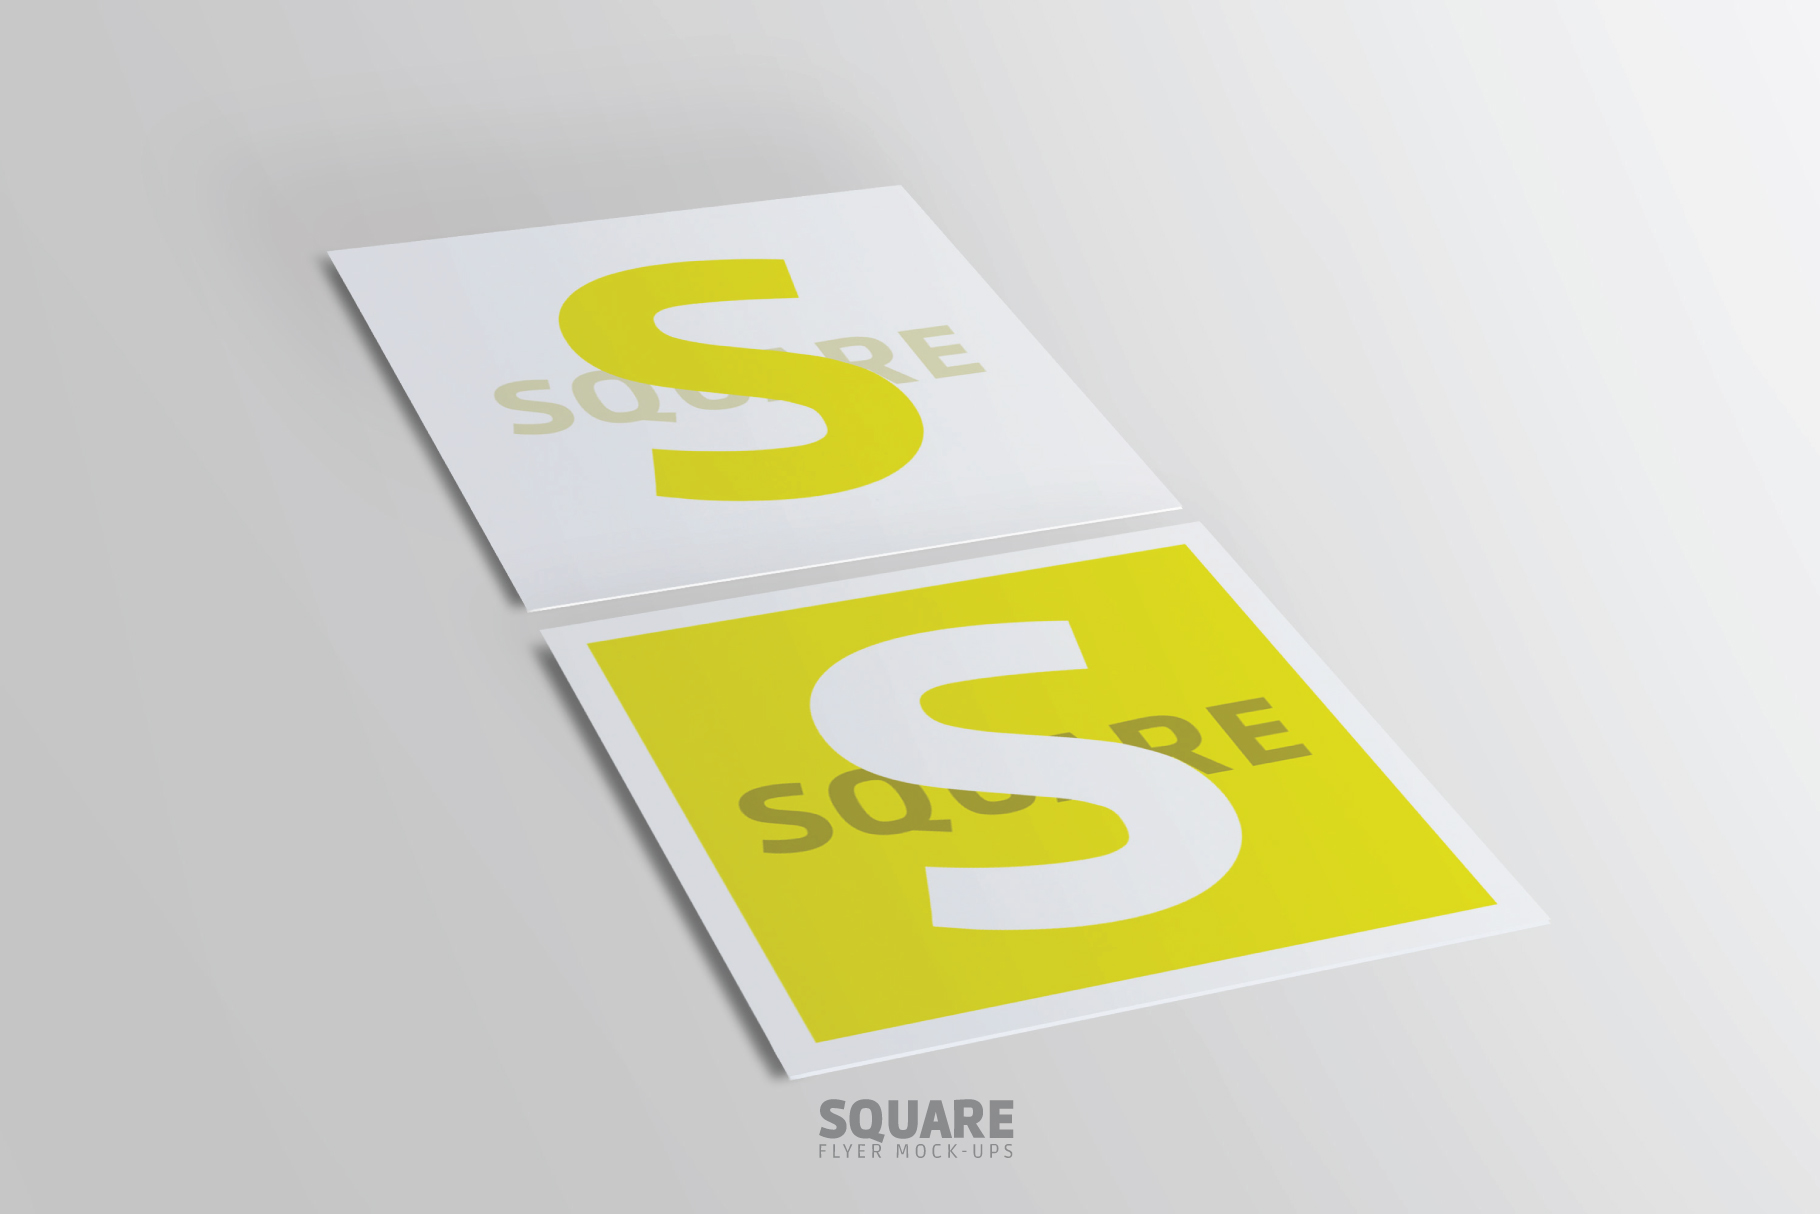 Square Flyer Mock-Up example image 4